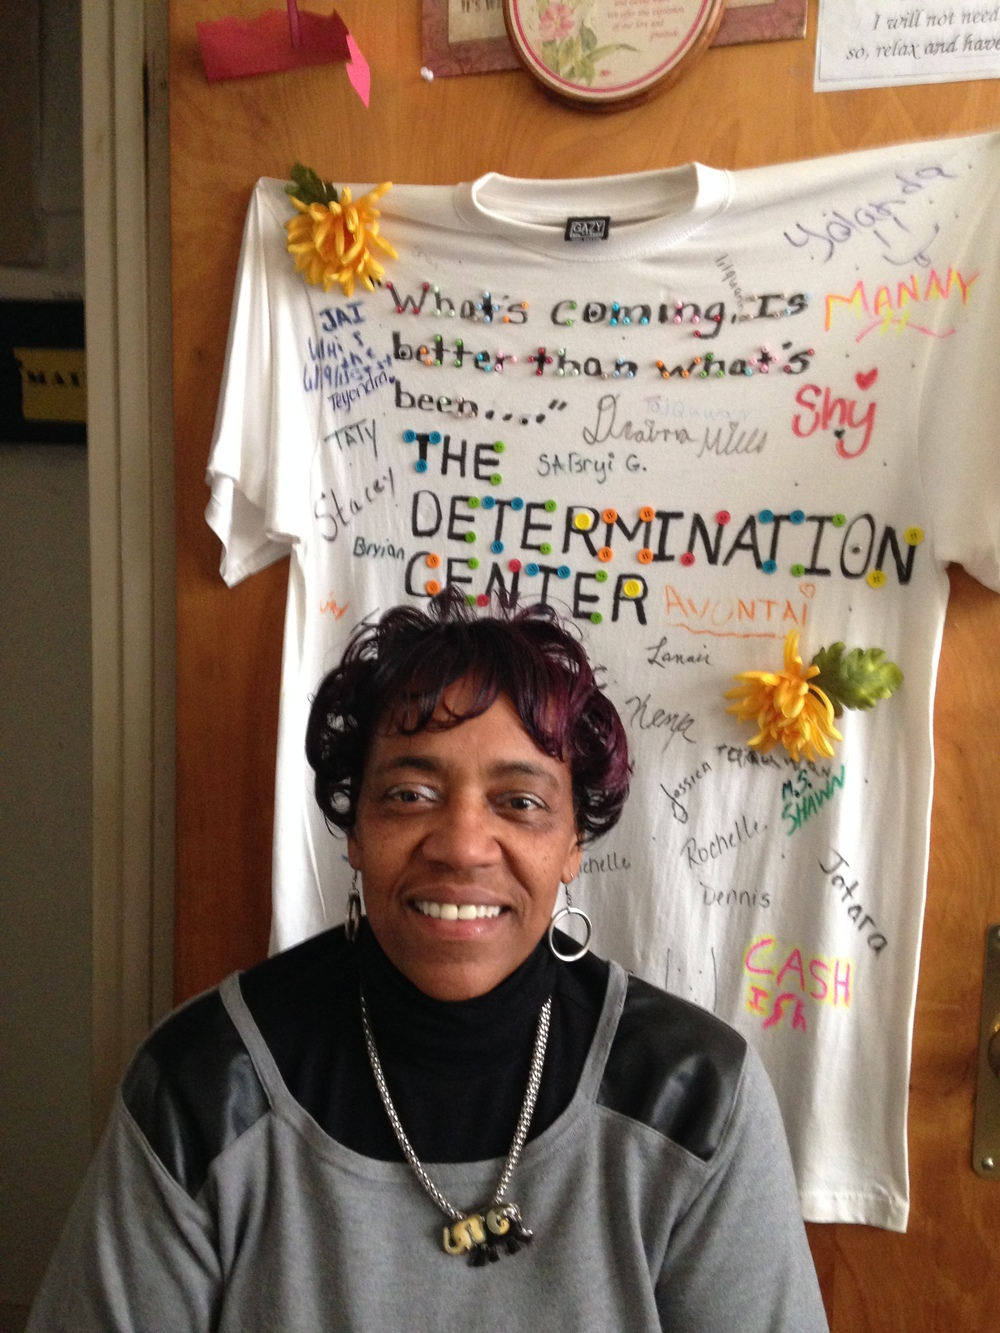 Mrs. Bettie Graham, Founder and Director of The Determination Center